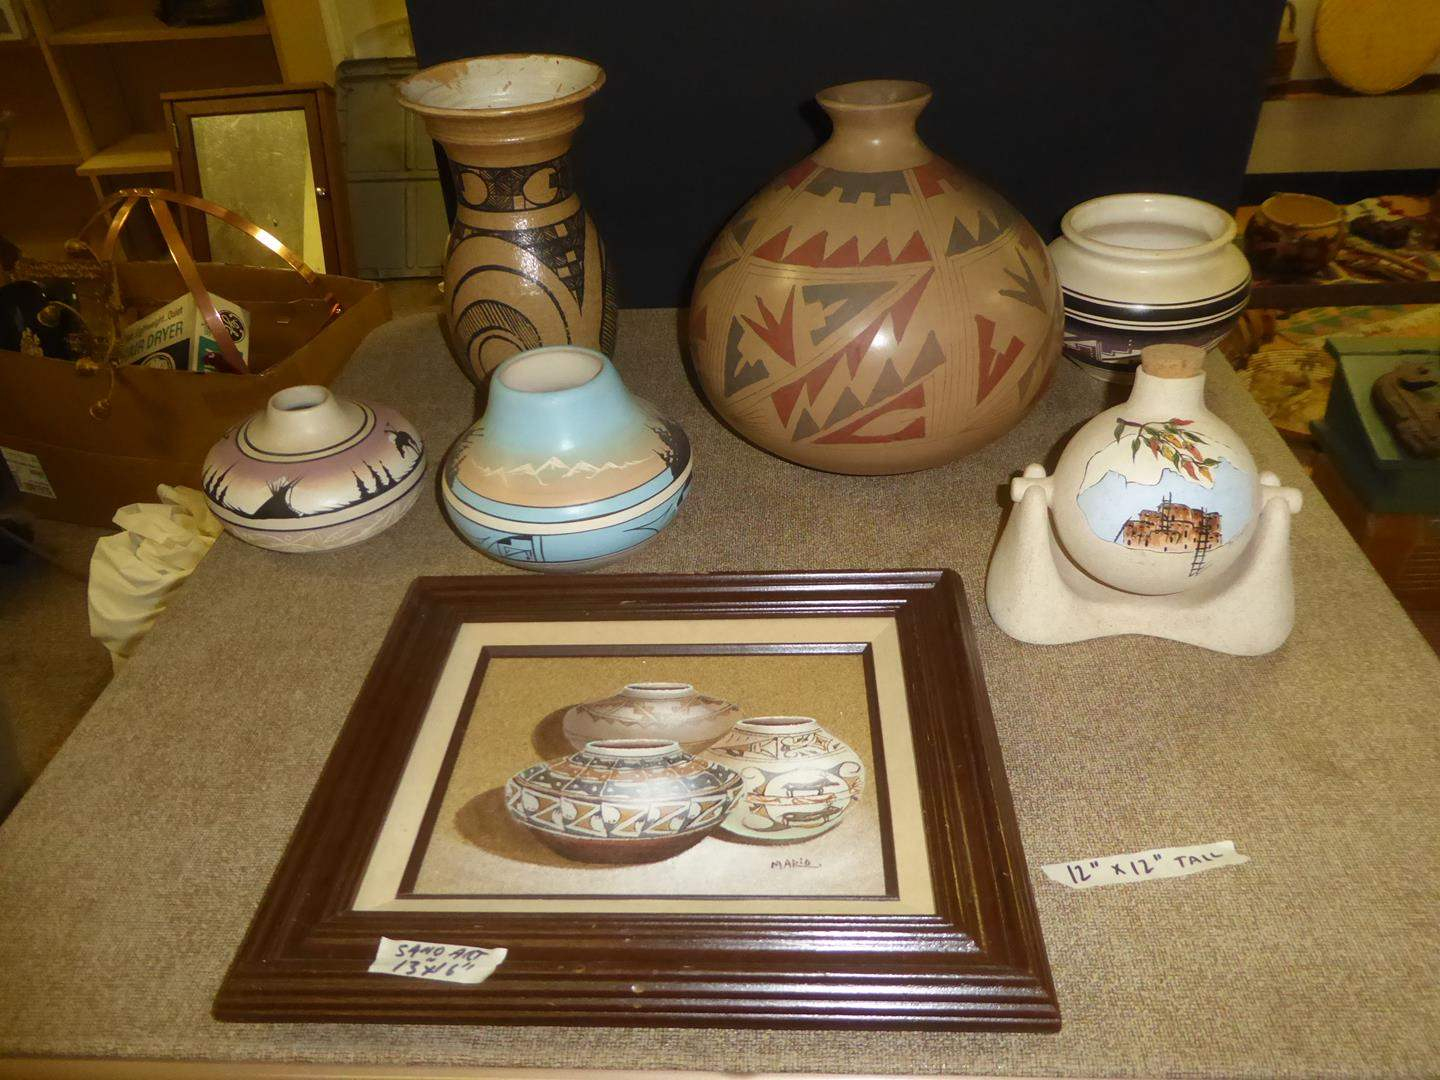 Lot # 191 - Framed Sand Art Painting by Marie, Signed Navajo Pottery & Native American Pottery (main image)